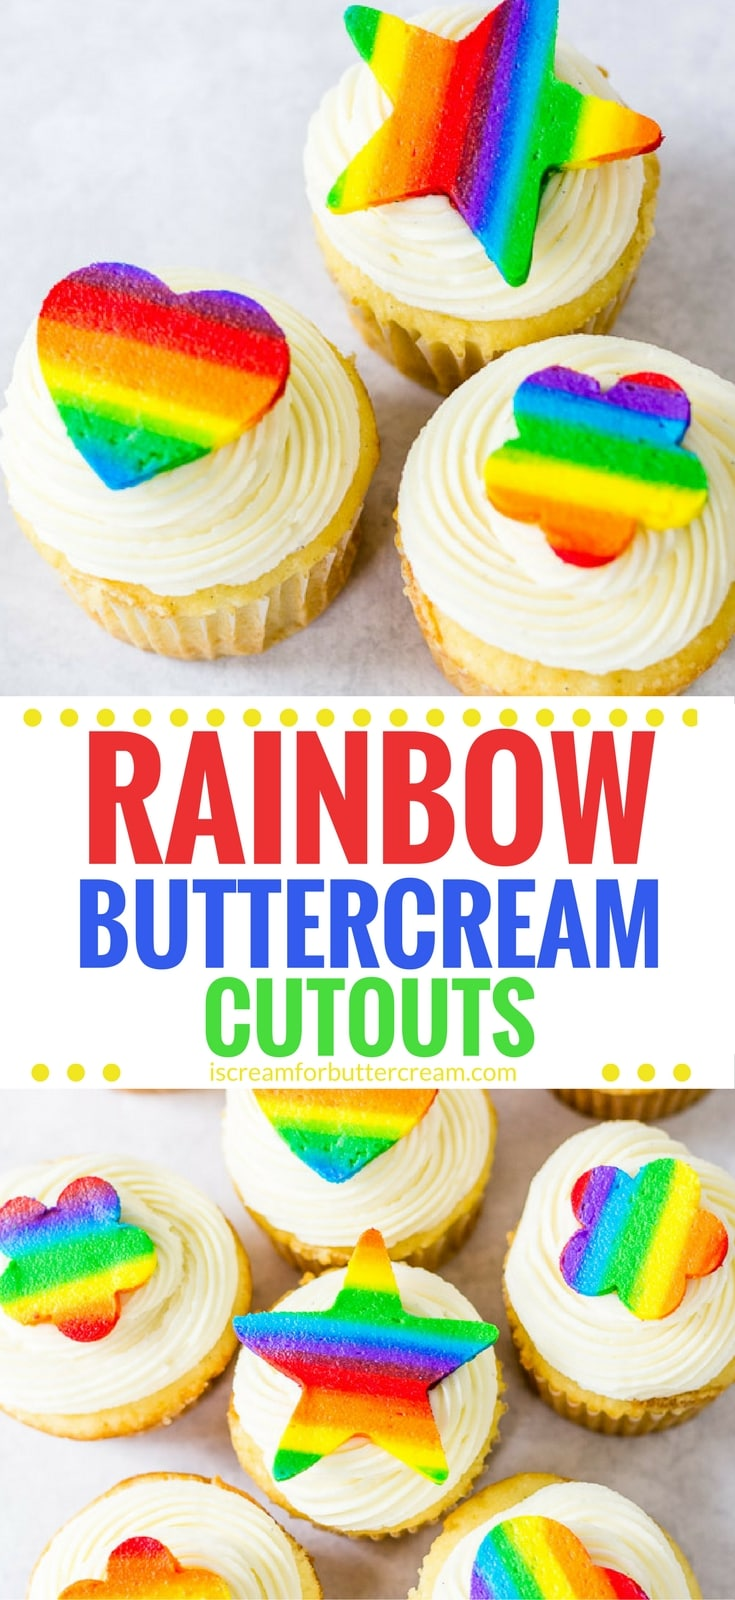 Sometimes you just want to make something cute and easy, but you don't want to mess with fondant. These cute rainbow buttercream cutouts are the tasty and perfect way to embellish your cakes or cupcakes. They can be added to a cake with just a dab of buttercream, or use them to top your cupcakes and you can cut them into any shape you like. #cakedecorating #cupcakedecorating #caketutorial #buttercreamtutorial